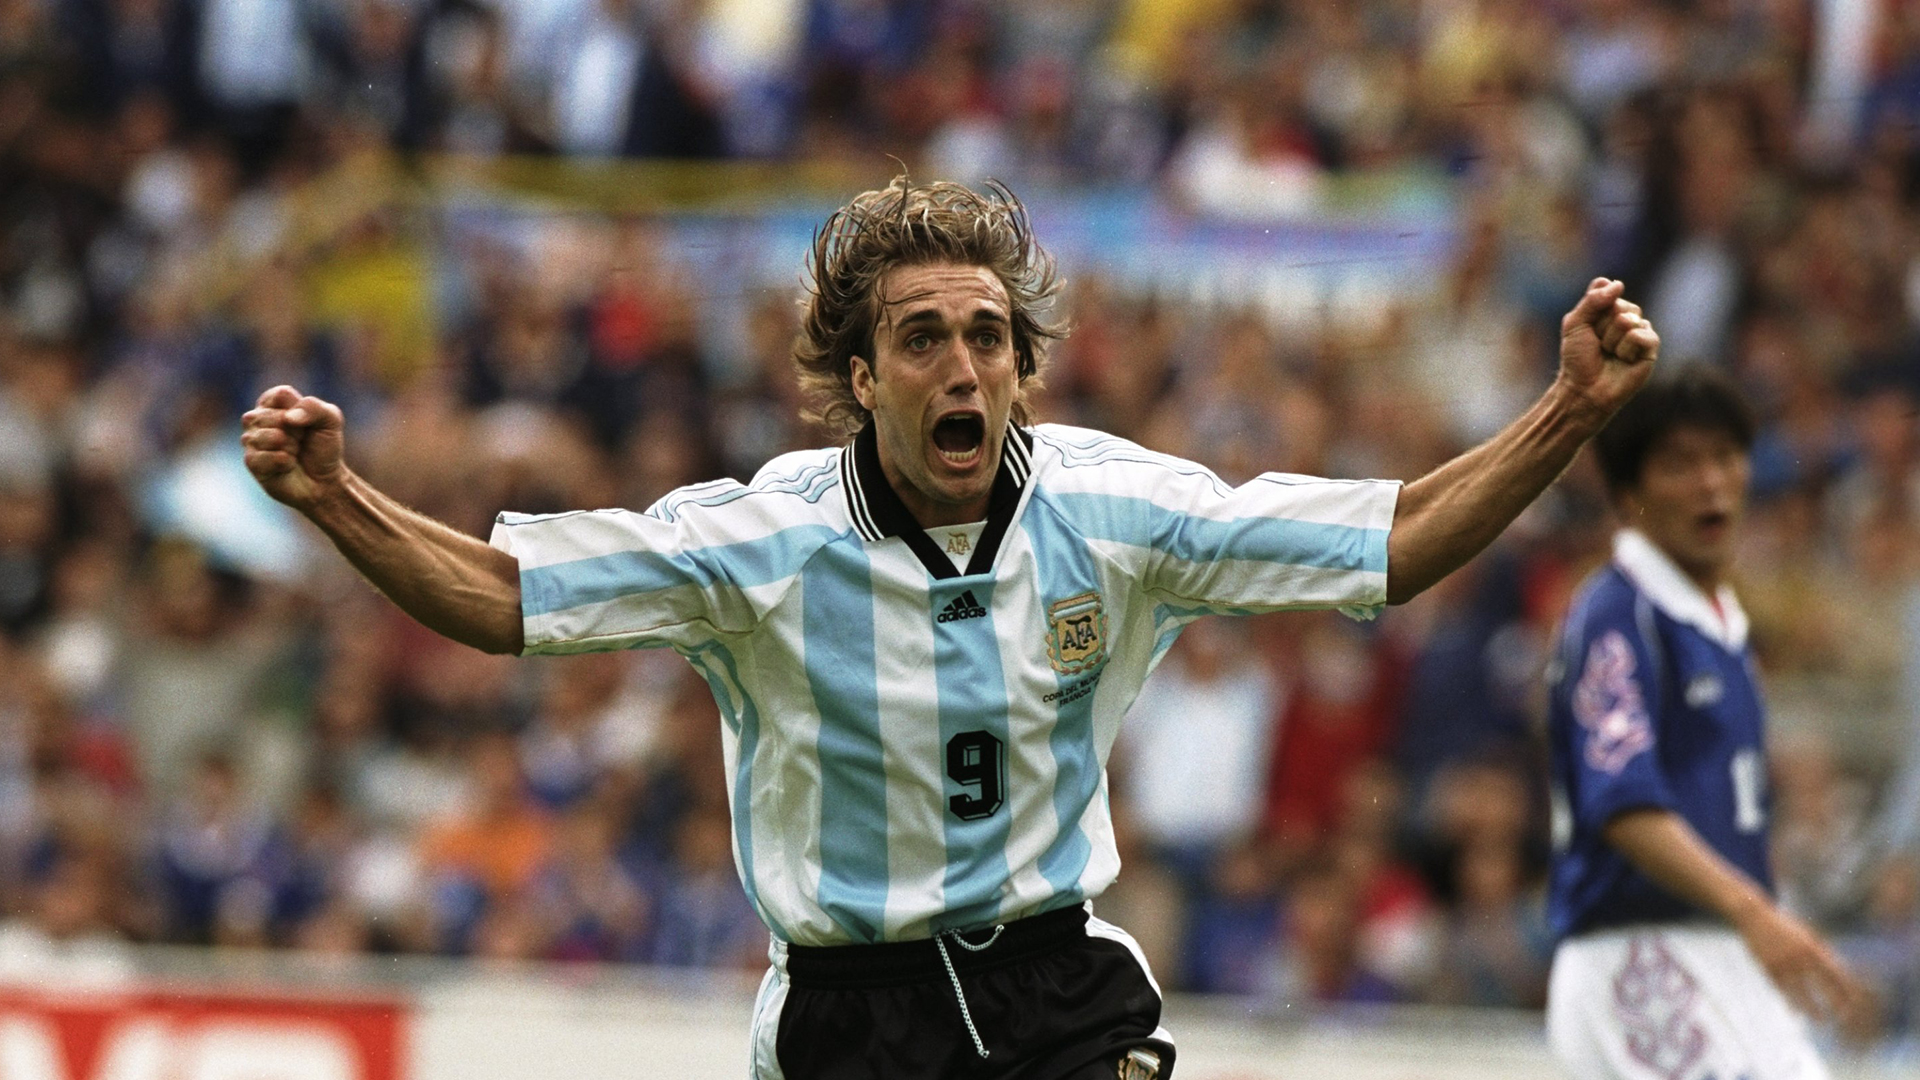 1998 Argentina World Cup Kit